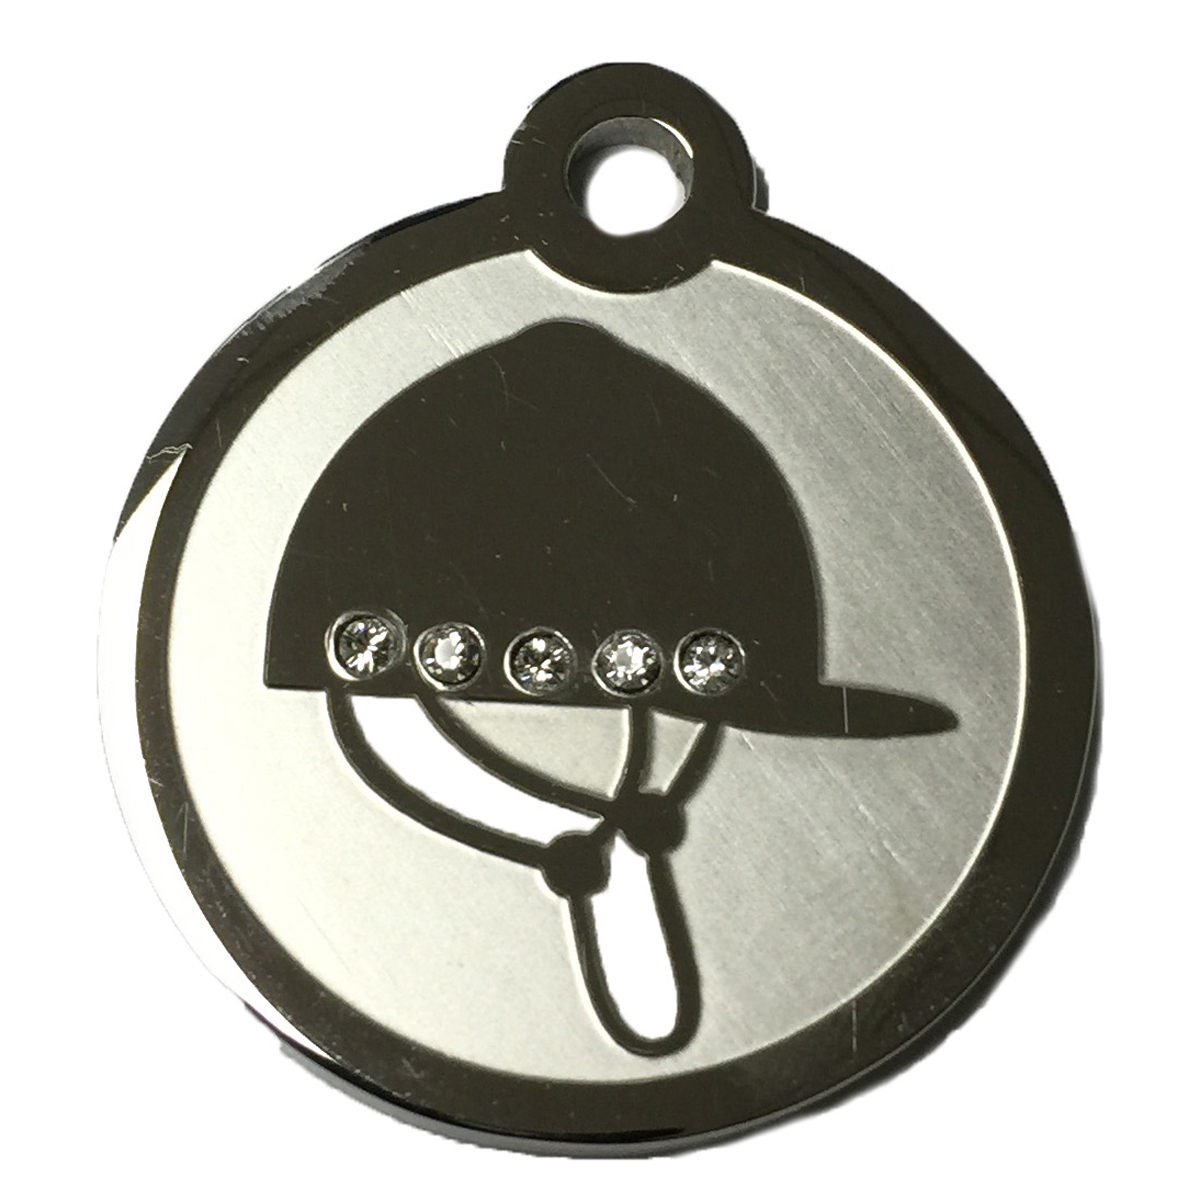 Hot Dog Swarovski Crystal and Stainless Steel Riding Helm...